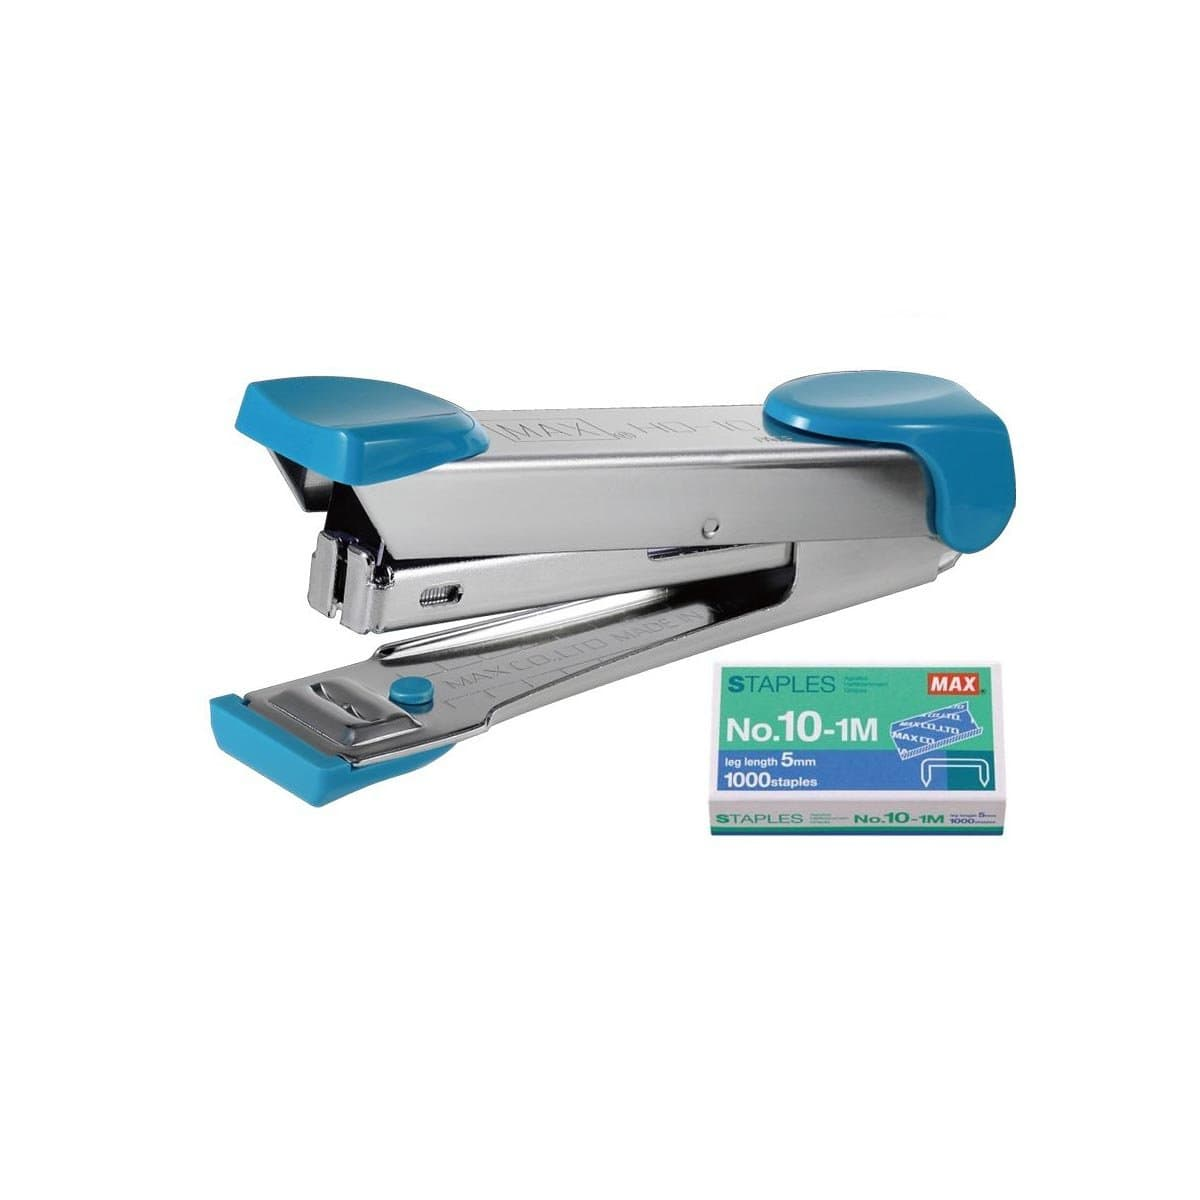 Max Stapler HD-10K Blue